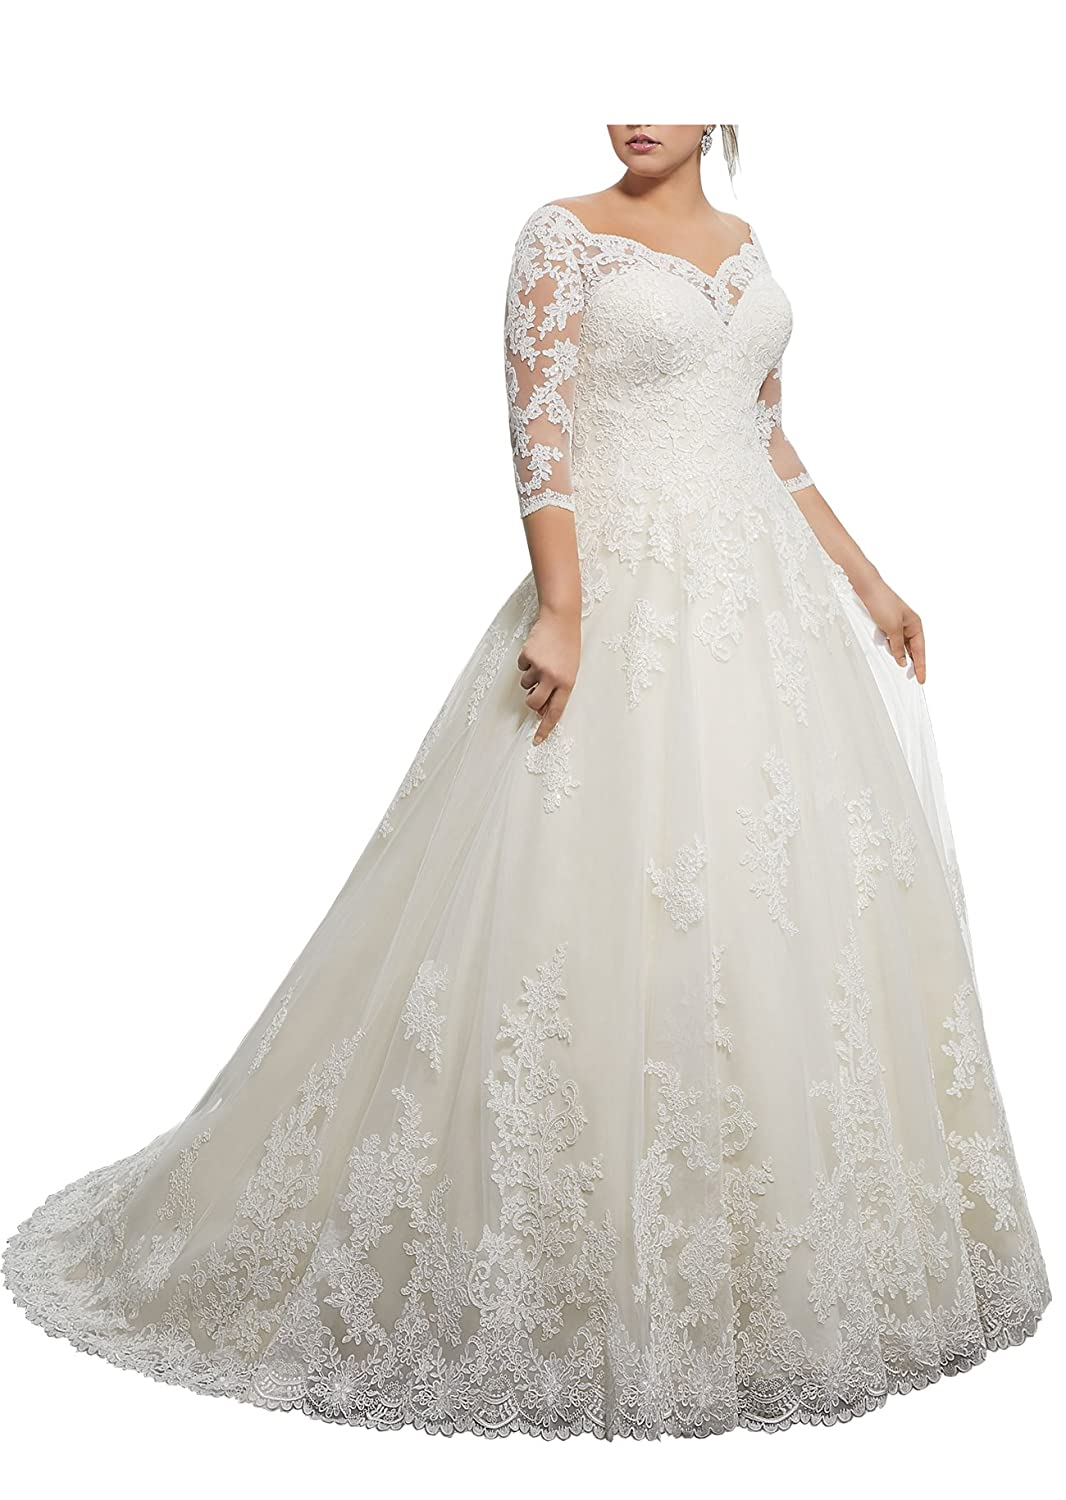 Beauty Bridal Womens Lace Wedding Dresses For Bride With 34